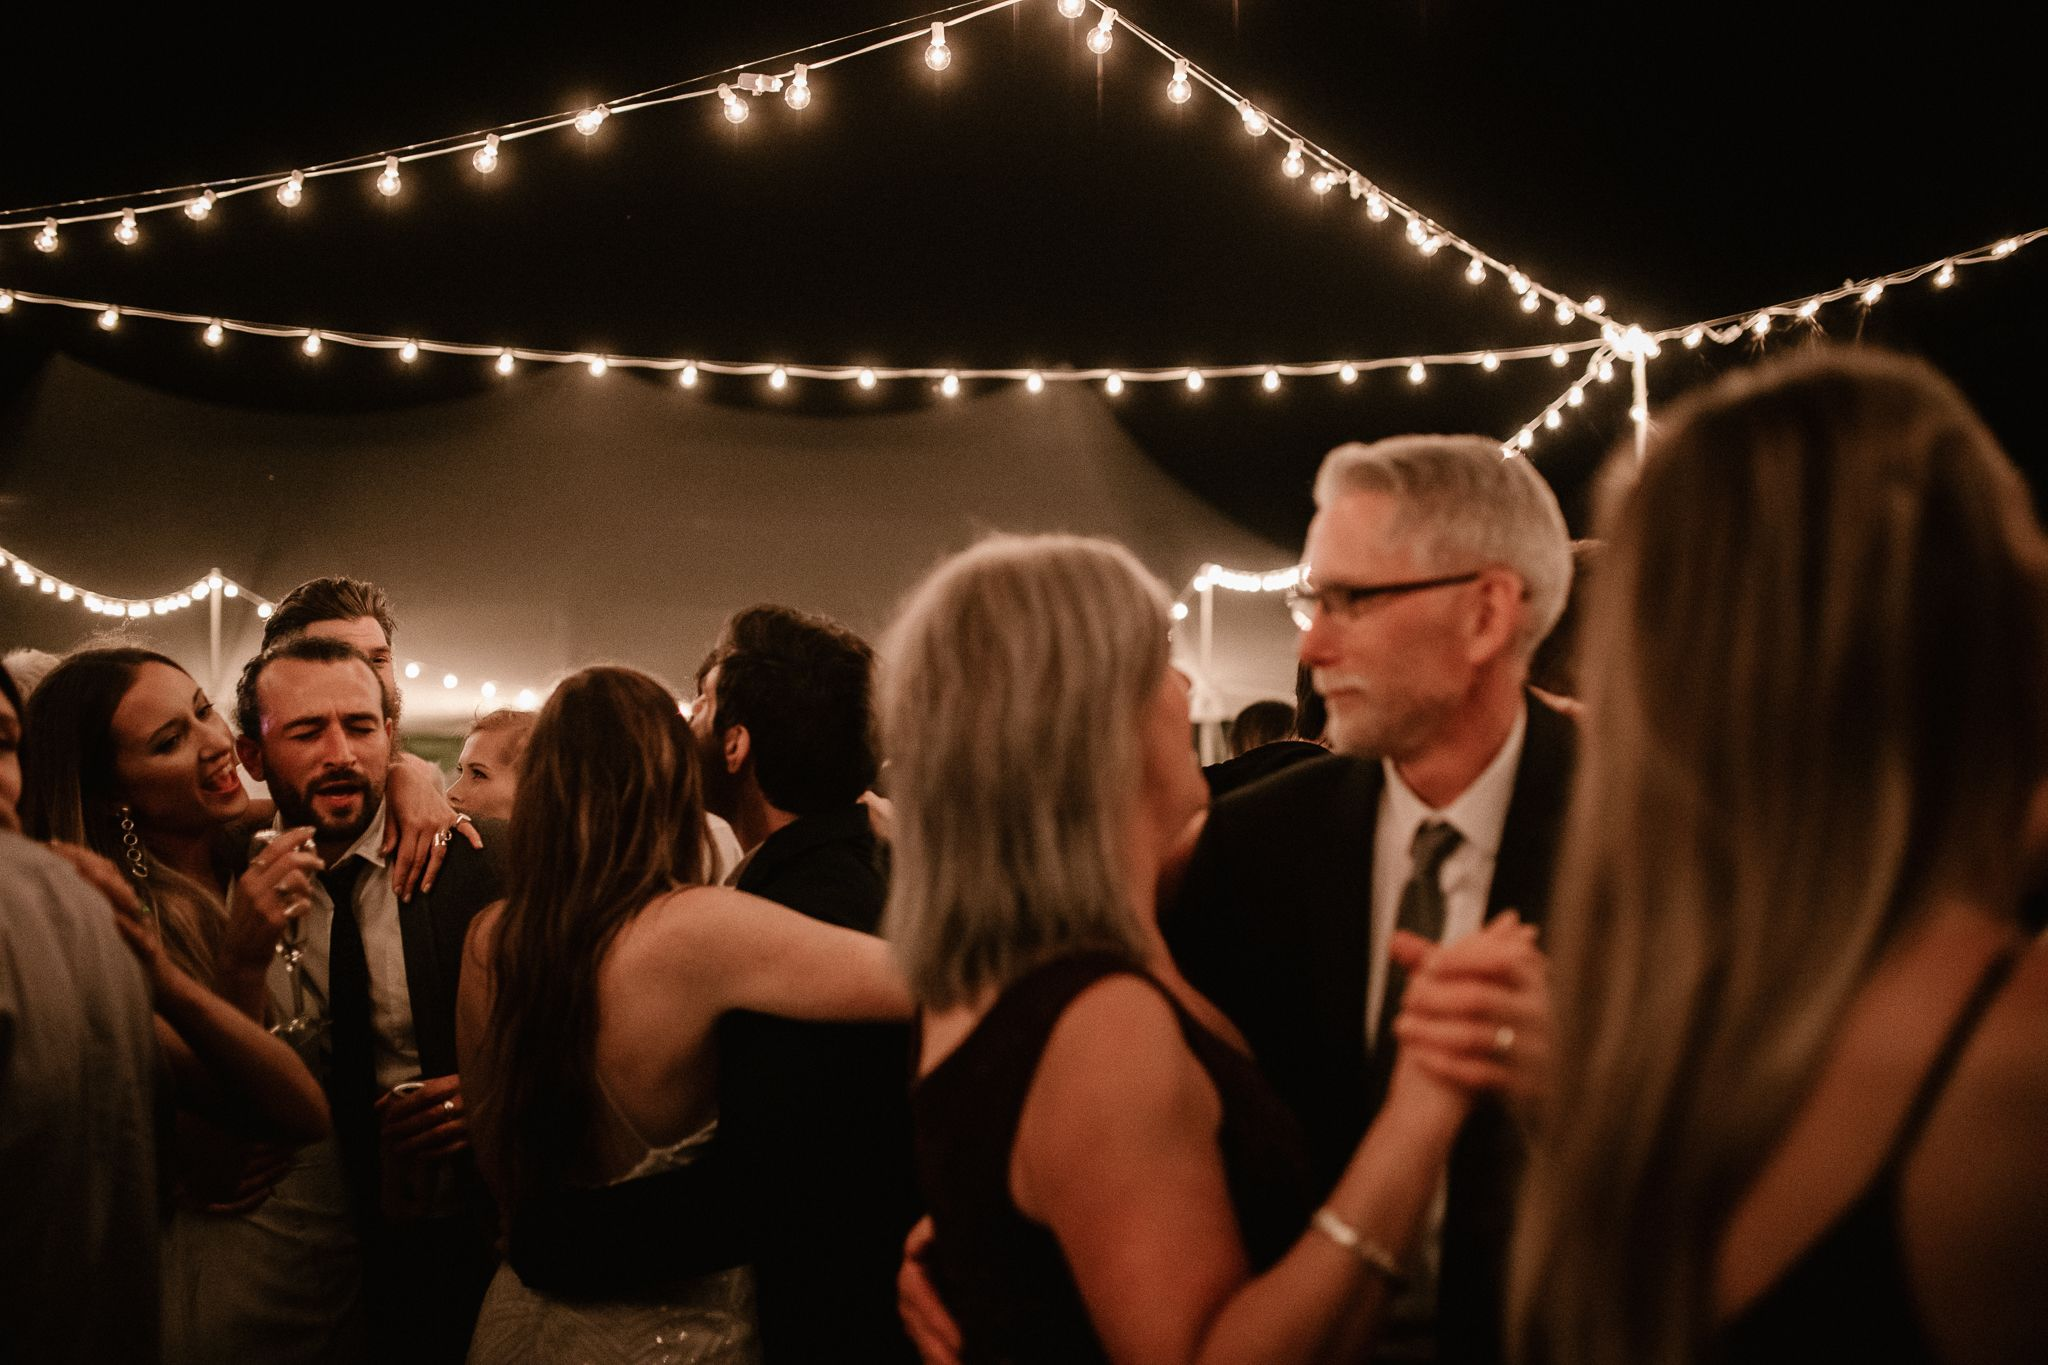 Toronto wedding guests singing and danging the night away in the moonlight under dimly lit string lights.